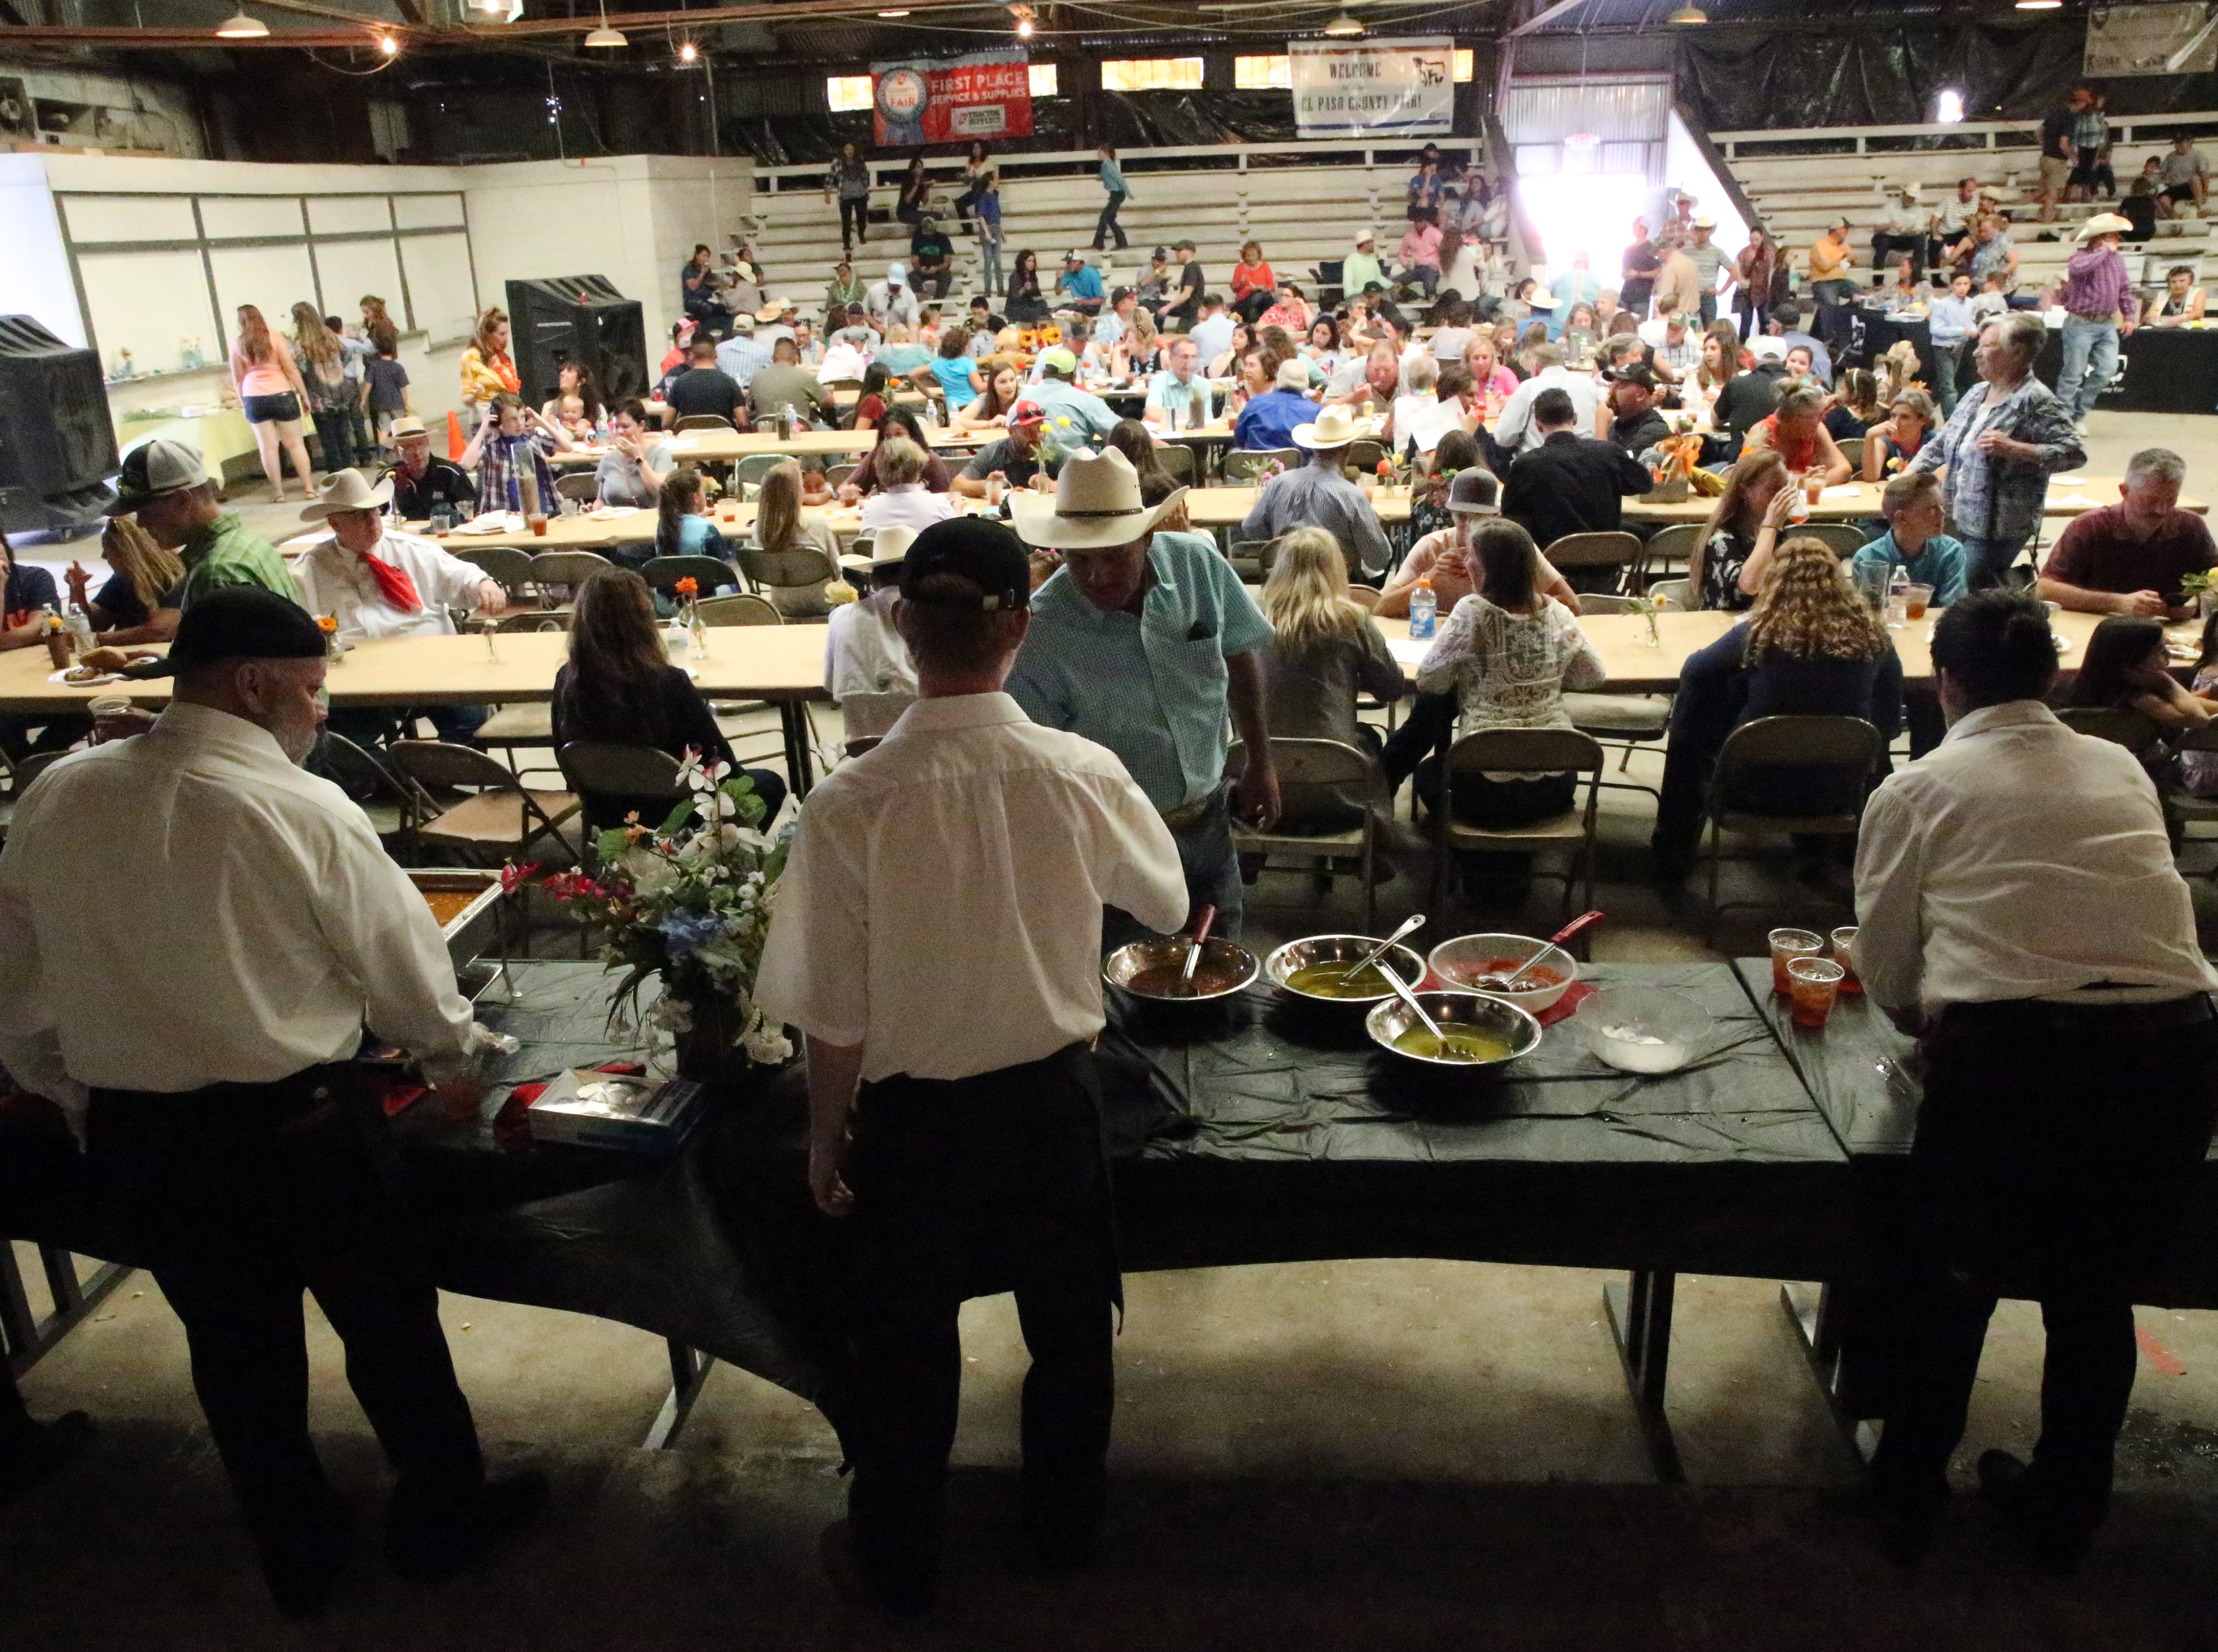 The serving line at the El Paso County Fair & Livestock Show auction Saturday at the Judging Arena behind the County Coliseum.